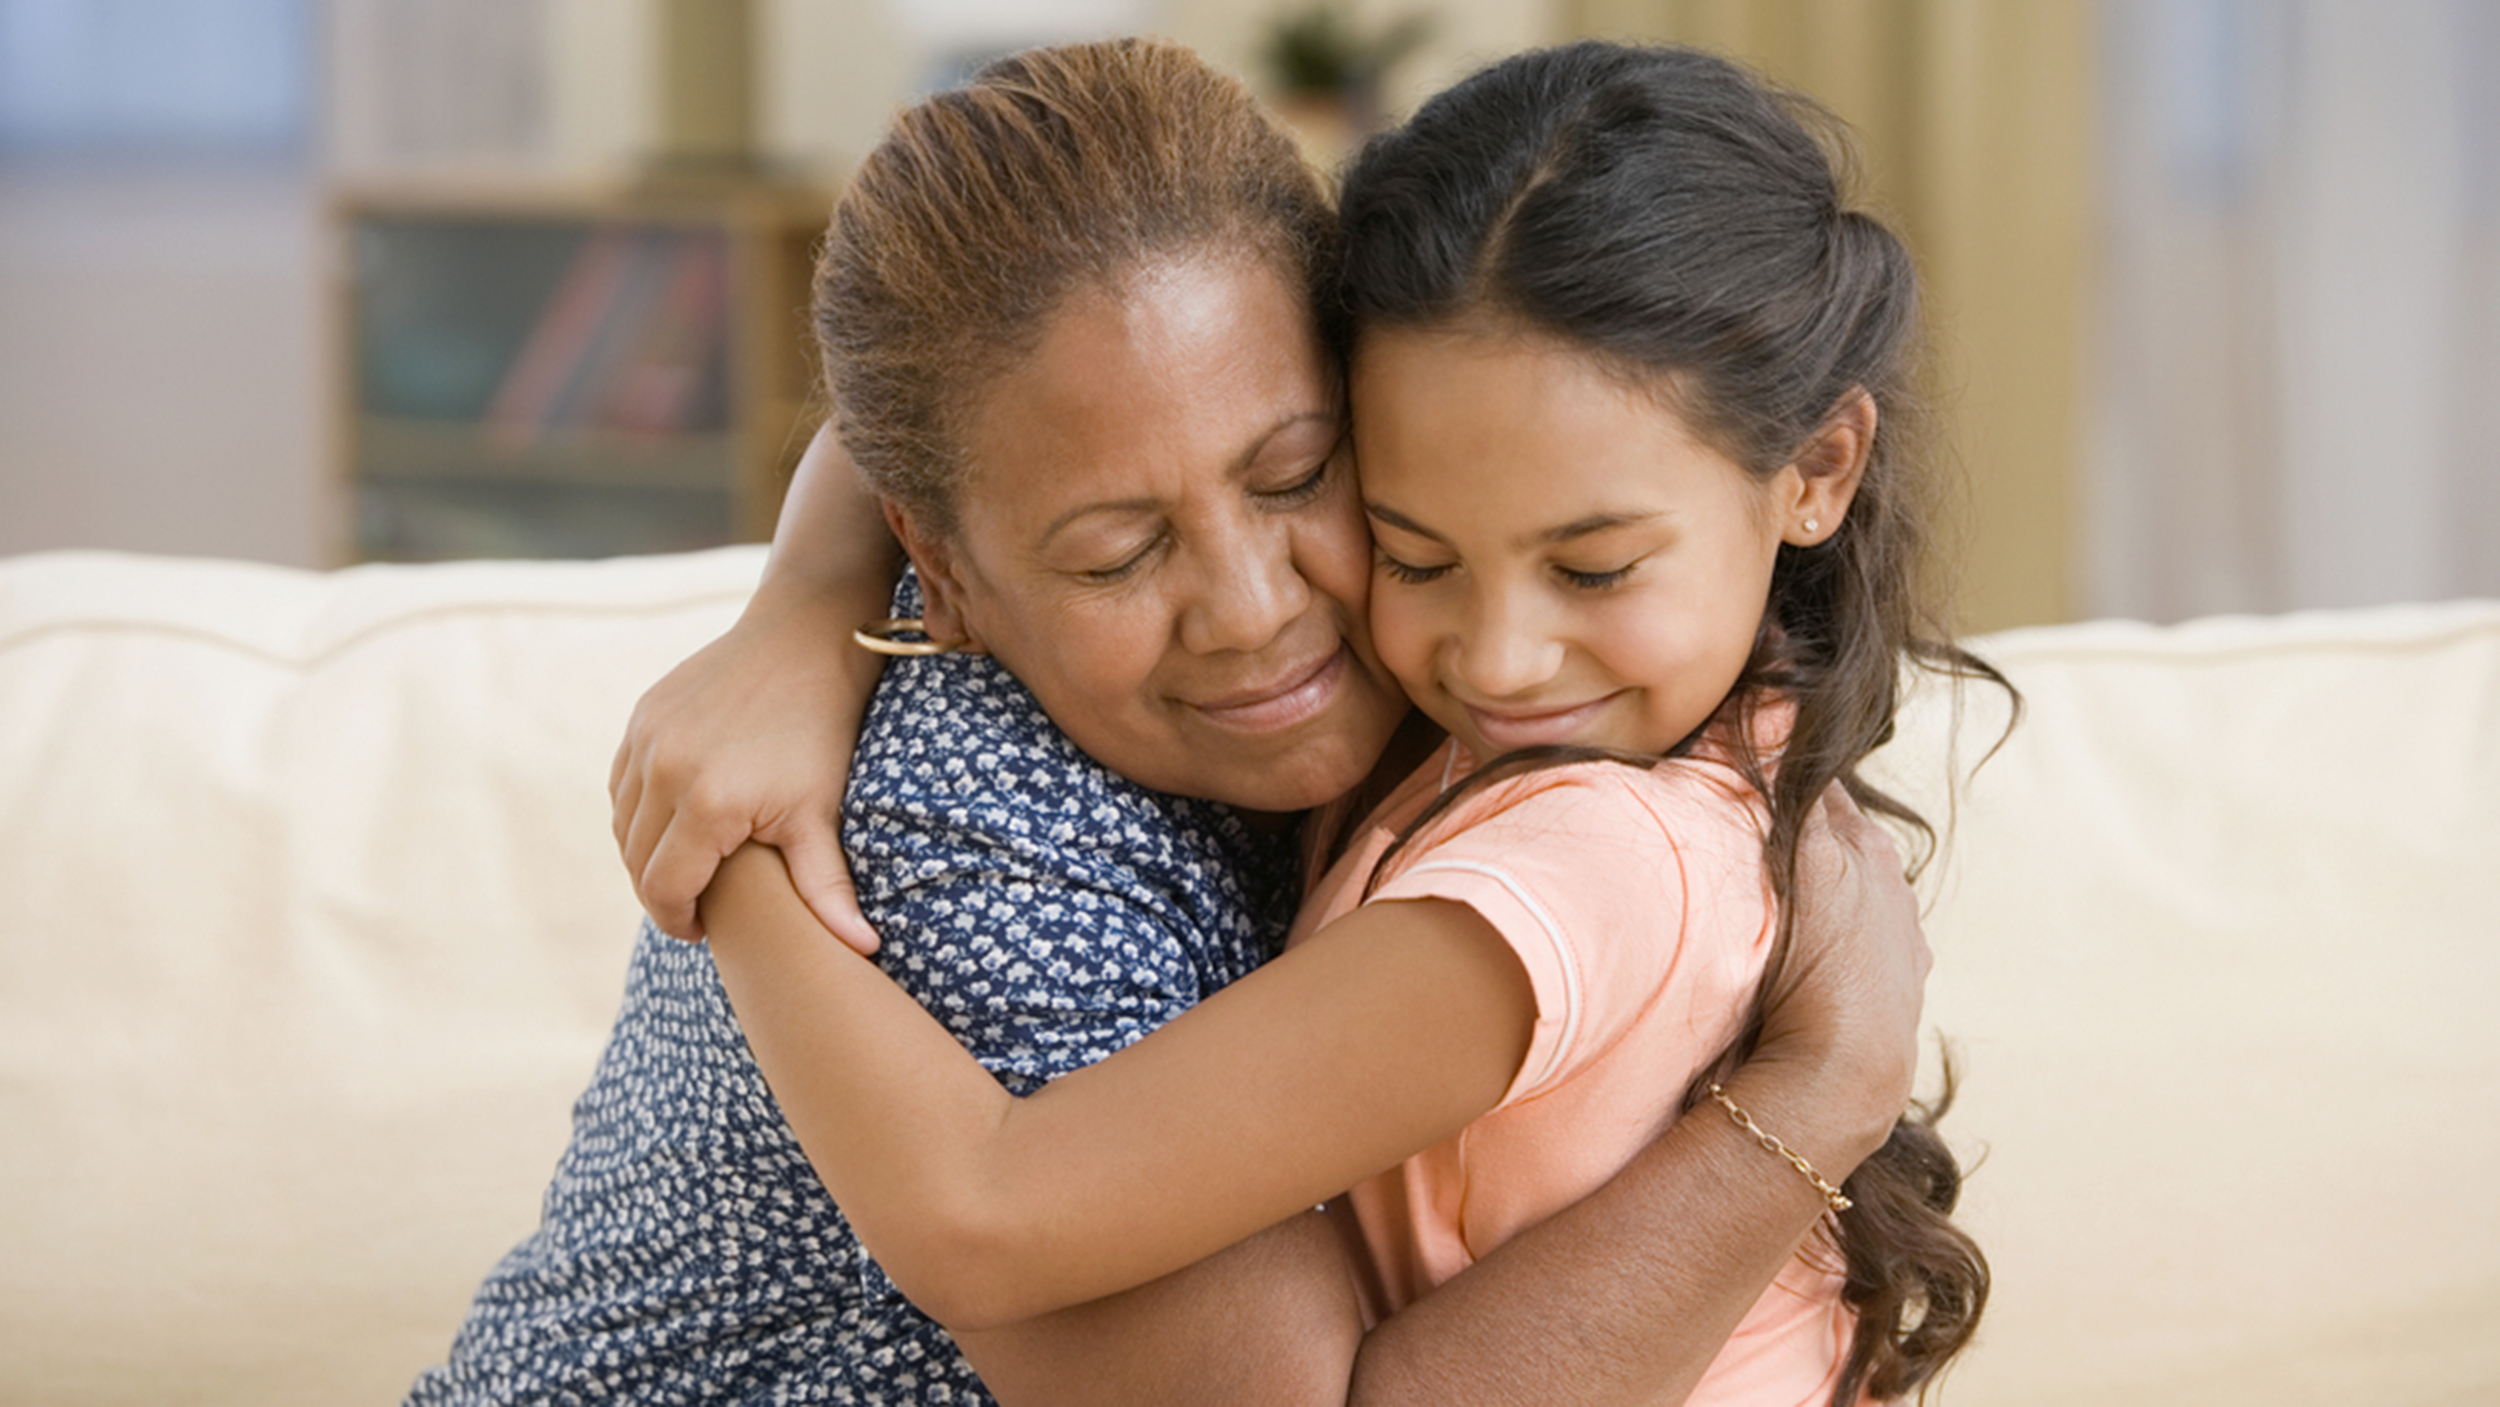 A hug a day may keep the sniffles away